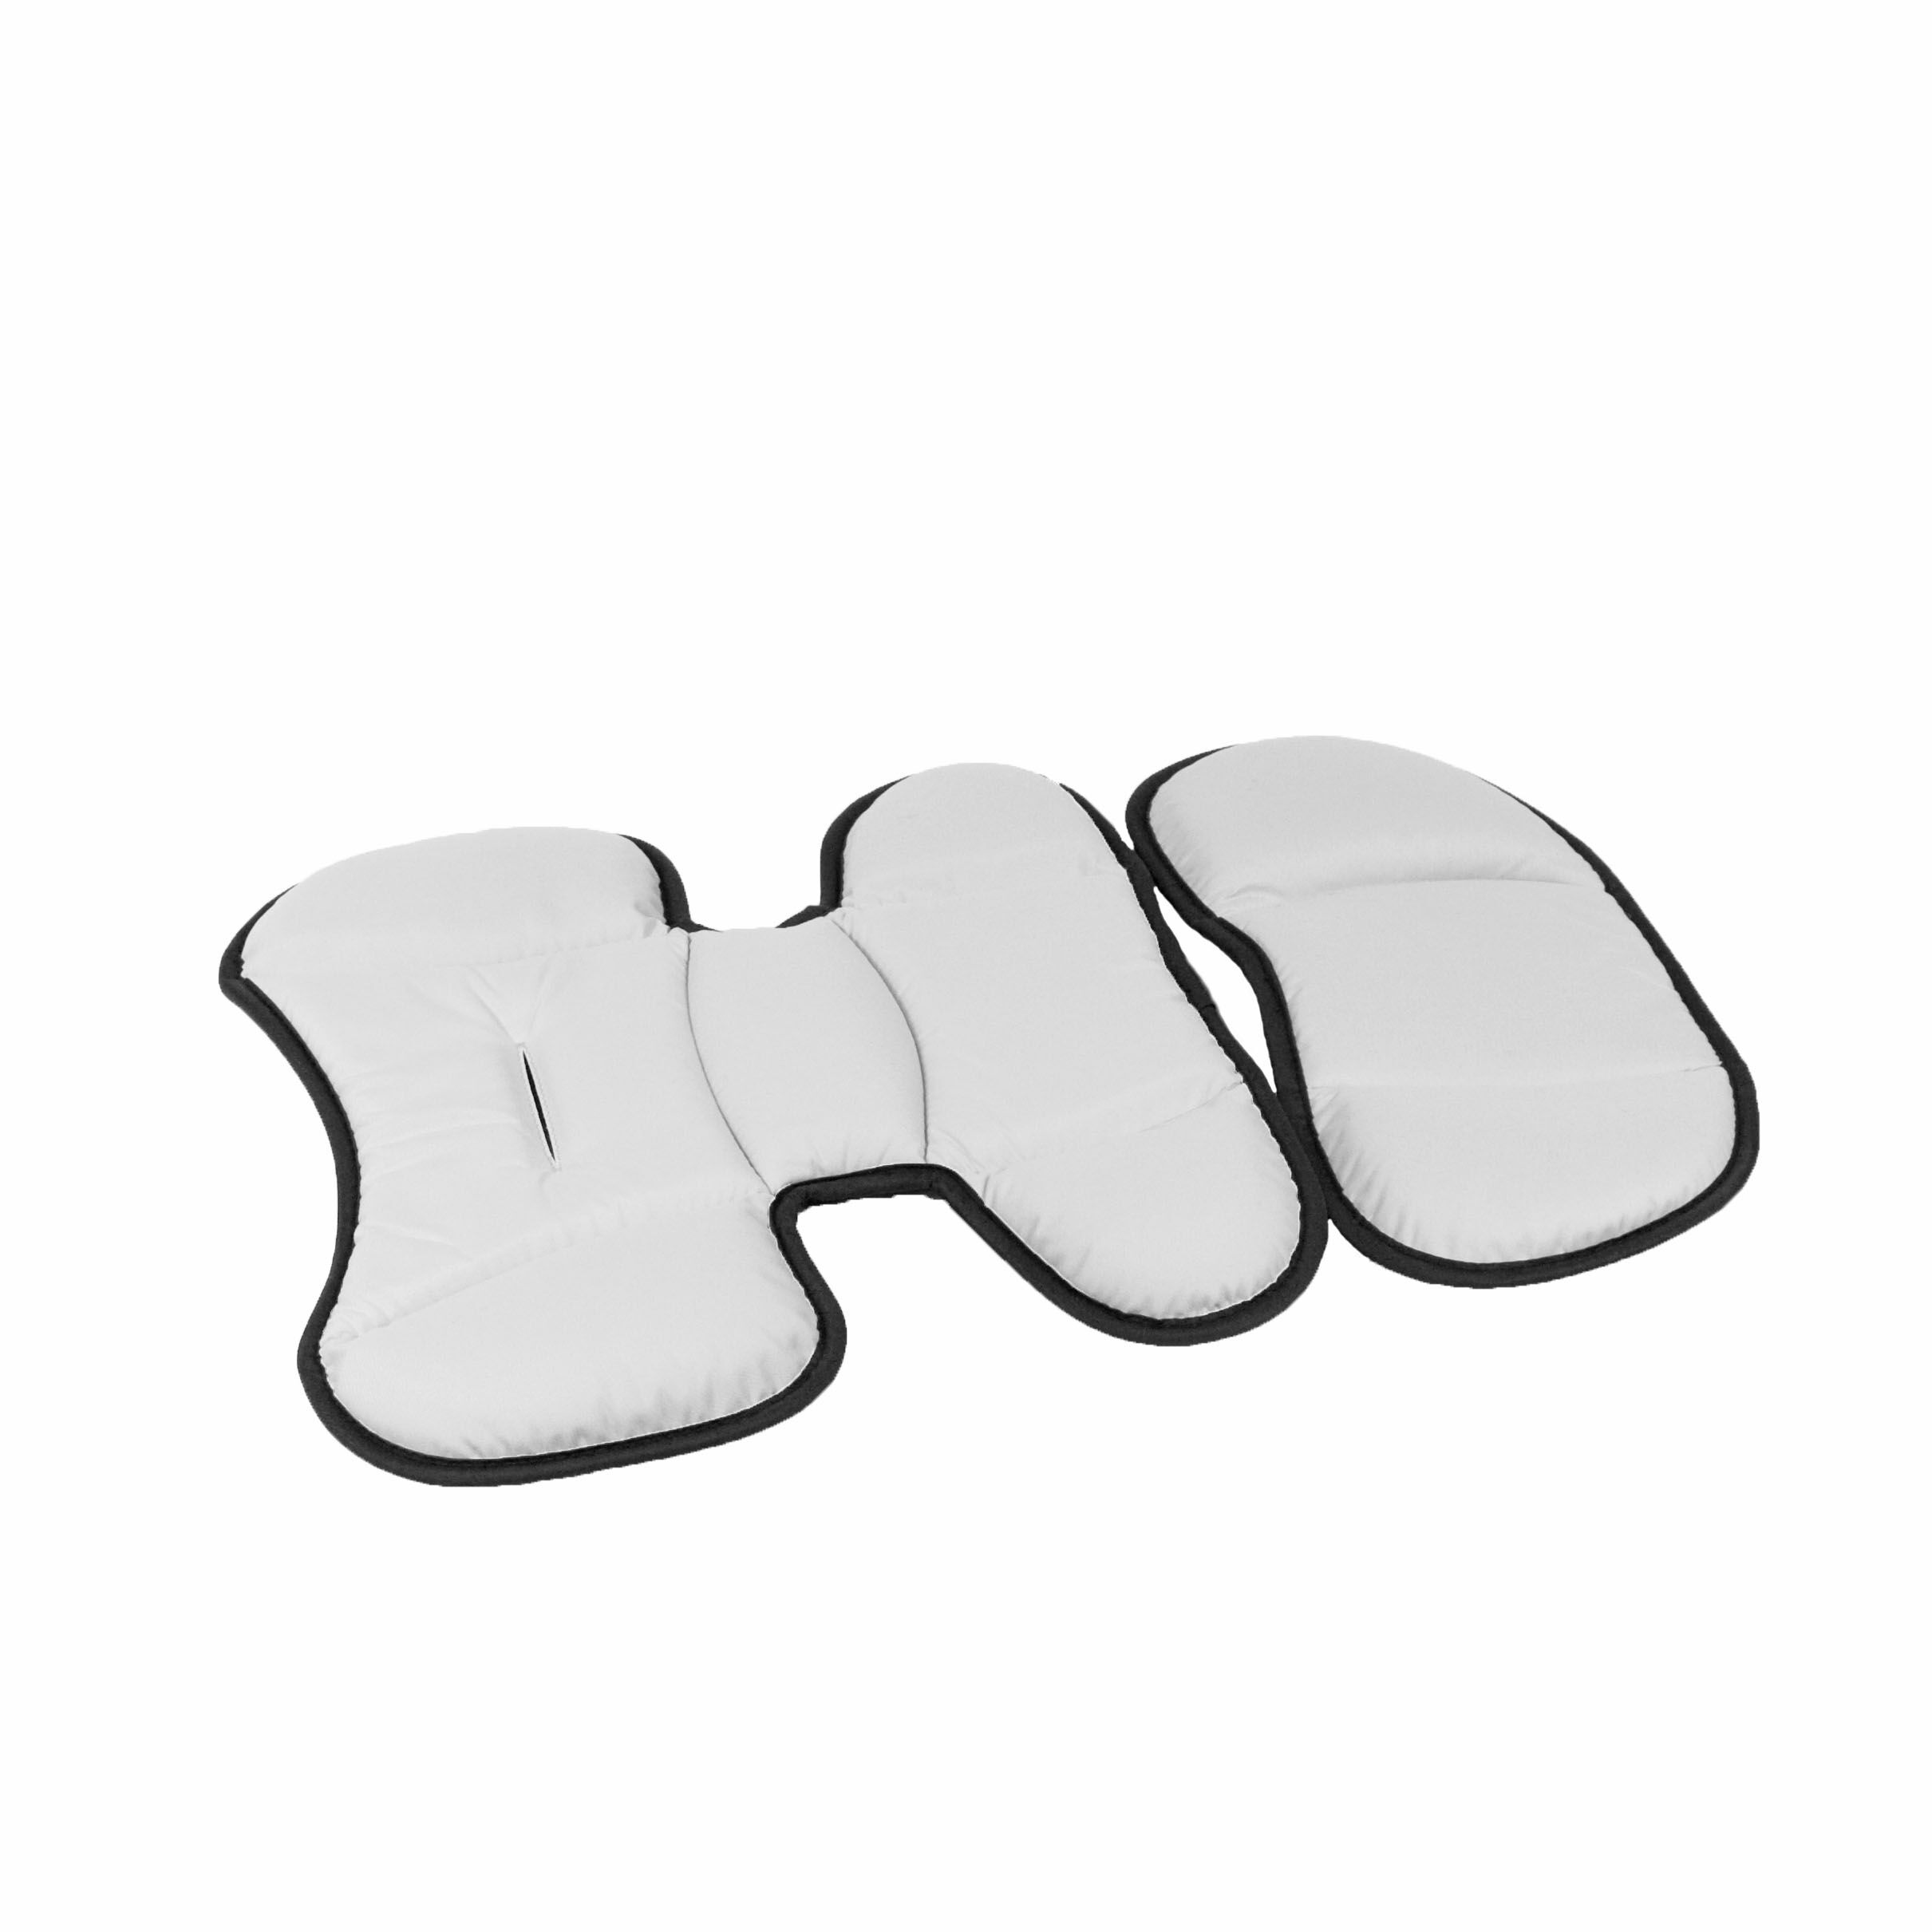 Graphica - KeyFit or KeyFit 30 Head and Body Insert  sc 1 st  Chicco & Replacement Parts - Stroller Wheels Baby Walkers | Chicco